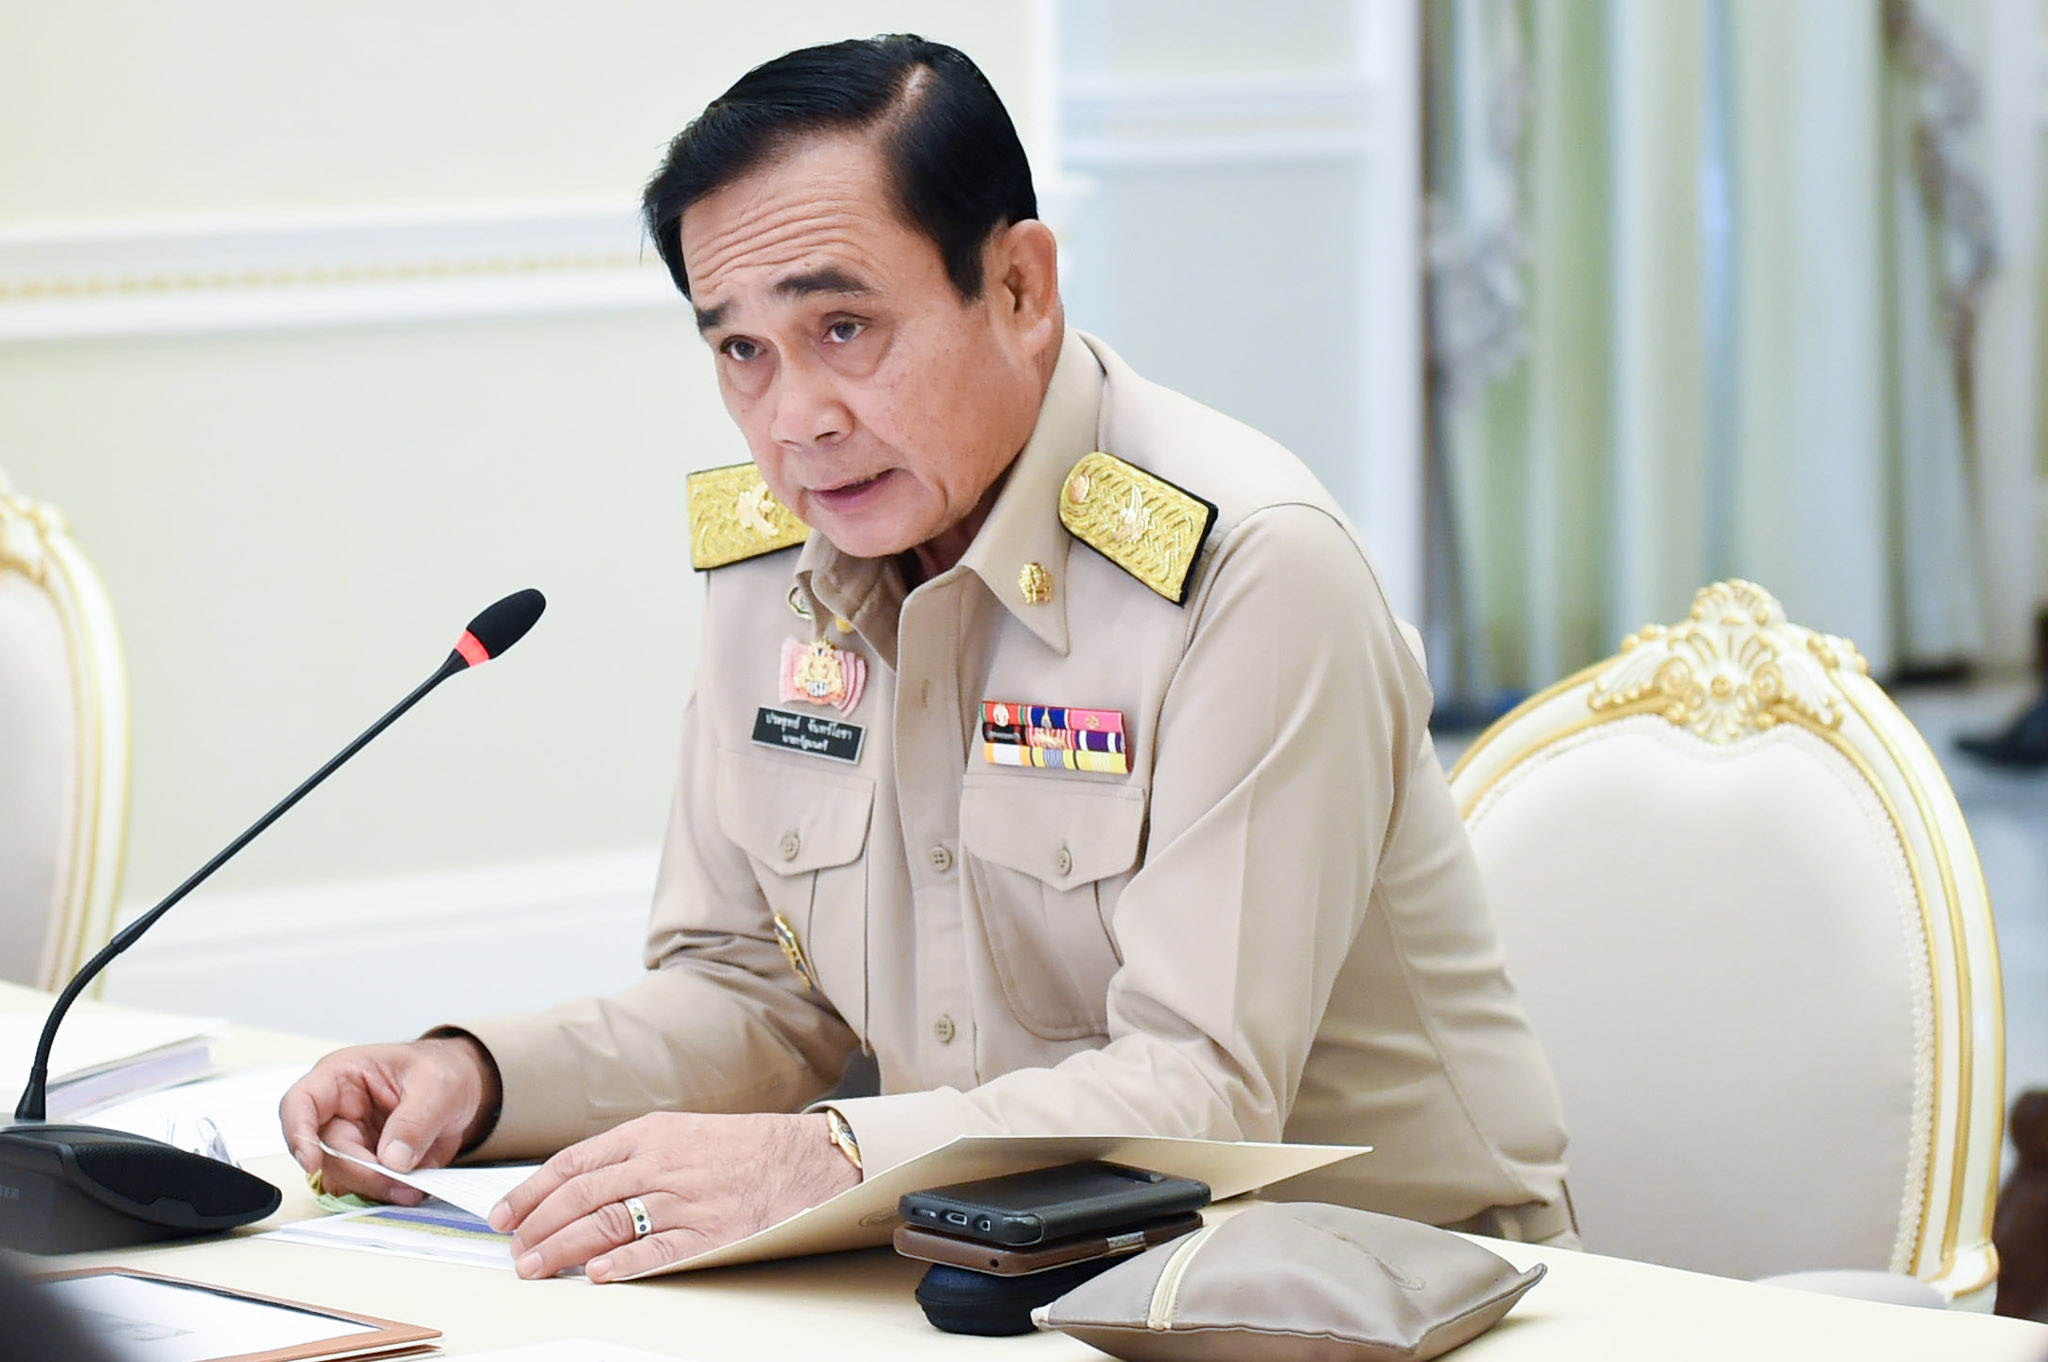 Thailand's Prime Minister Prayuth Chan-Ocha sits at a desk while speaking into a microphone.